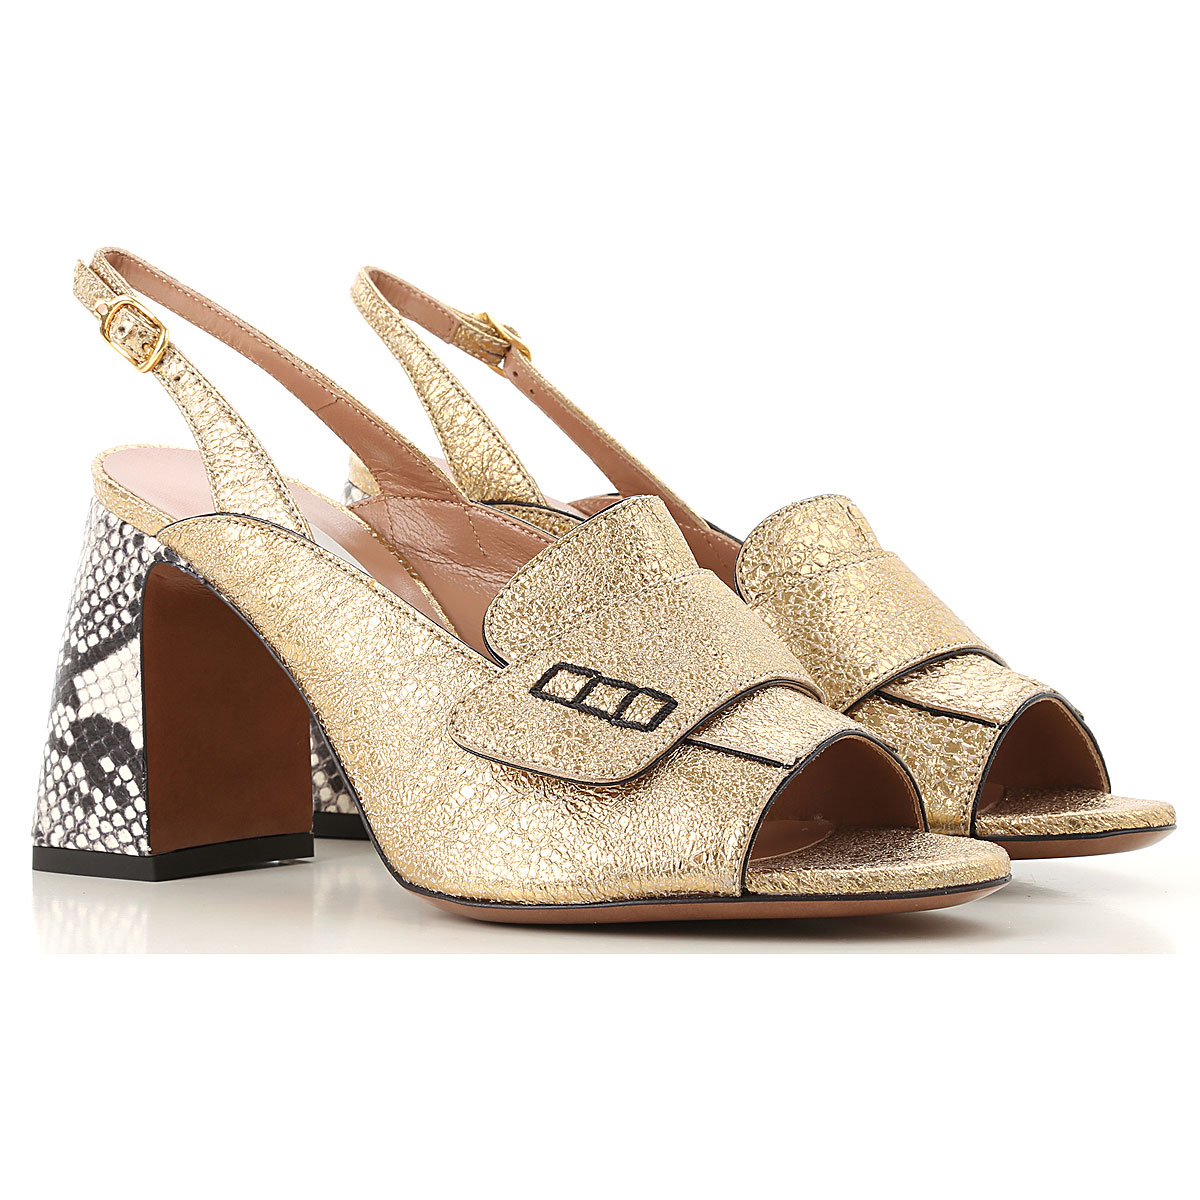 Lautre Chose Sandals for Women On Sale in Outlet, Bronze, Leather, 2019, 10 6 6.5